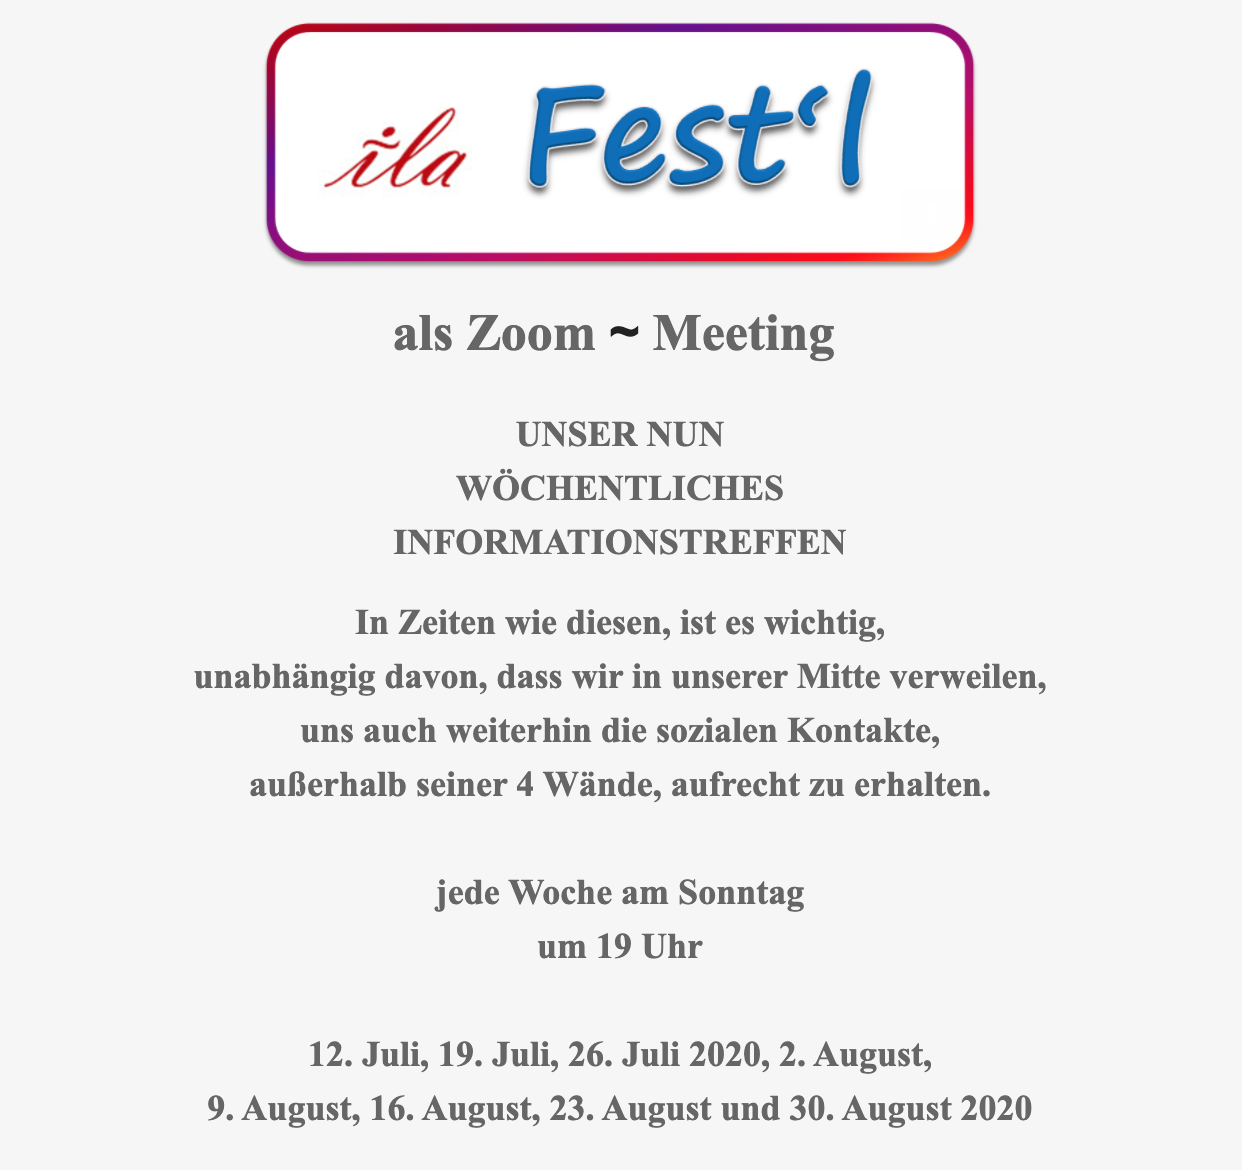 ila Festl Zoom Meeting